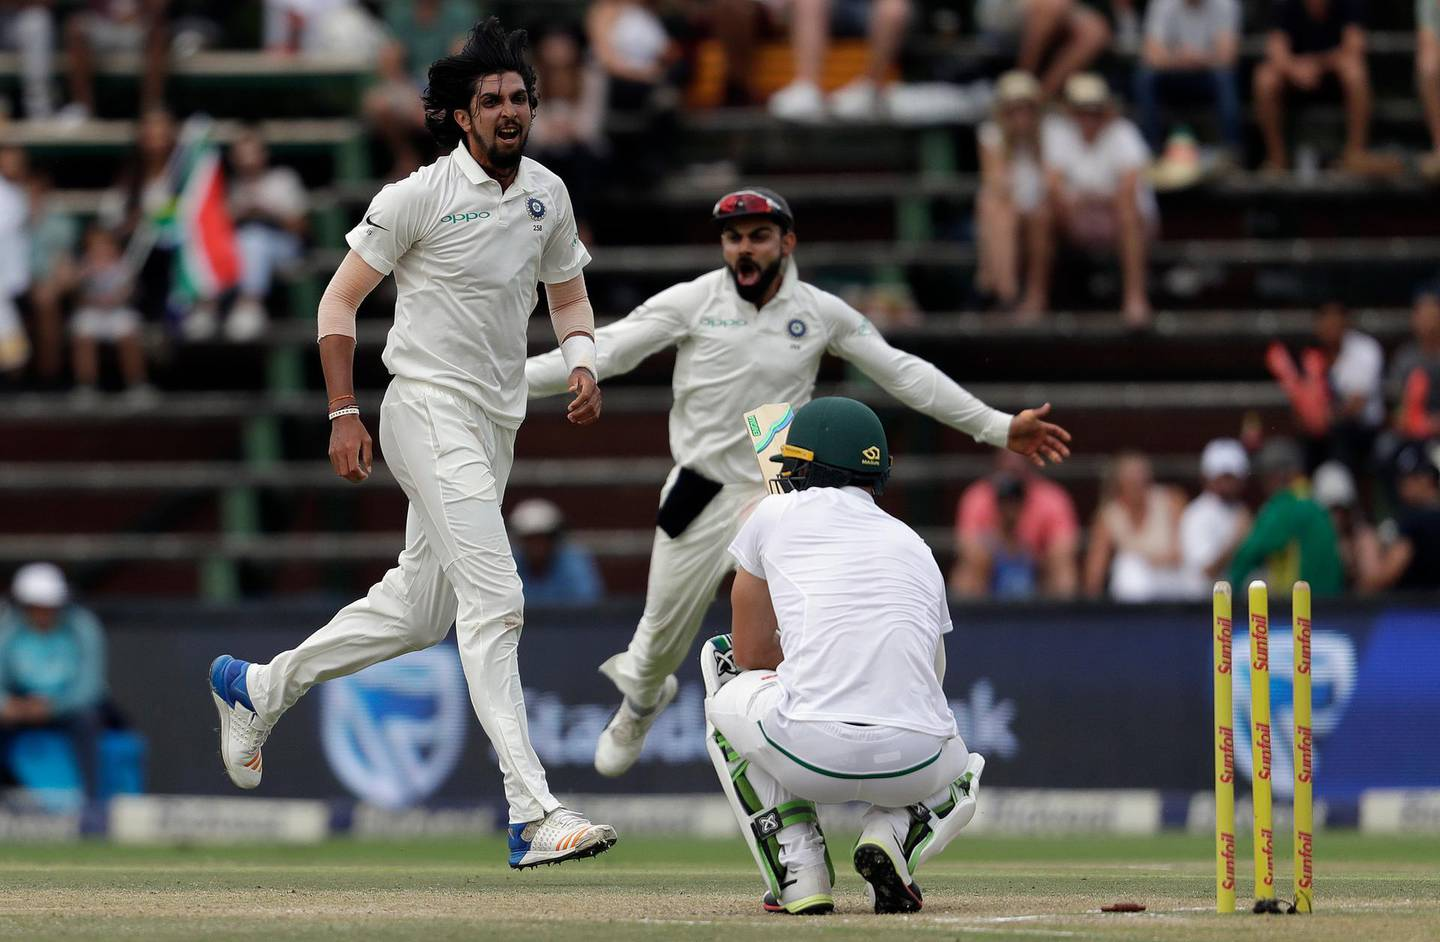 India's bowler Ishant Sharma, left, with captain Virat Kohli reacts after bowling South Africa's captain Faf du Plessis' for 2 runs on the fourth day of the third cricket test match between South Africa and India at the Wanderers Stadium in Johannesburg, South Africa, Saturday, Jan. 27, 2018. (AP Photo/Themba Hadebe)